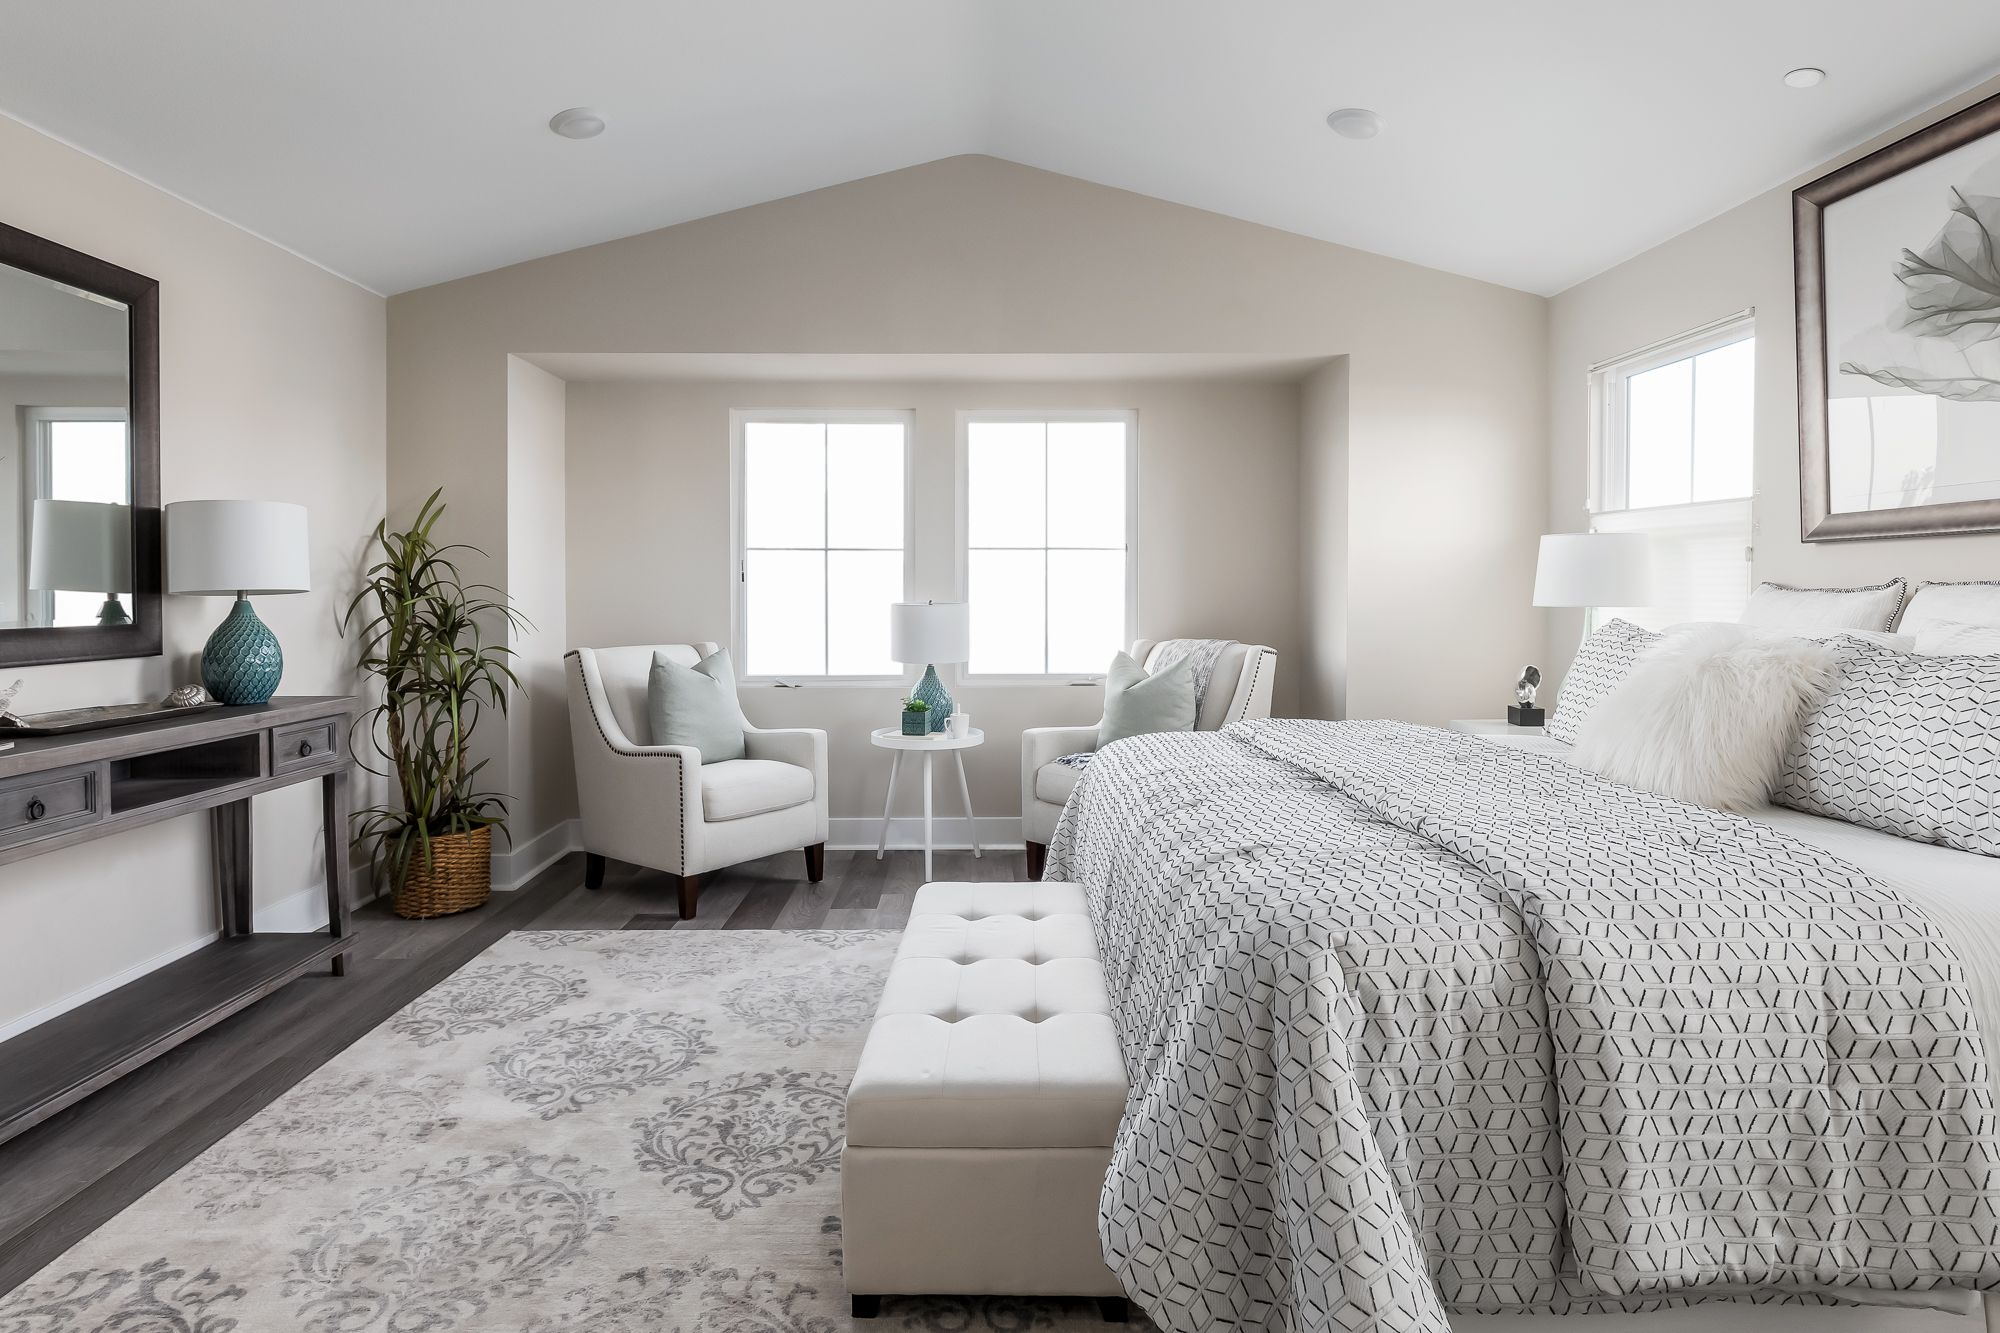 Bedroom featured in the Single Family Homes 1 By McKellar McGowan in San Diego, CA